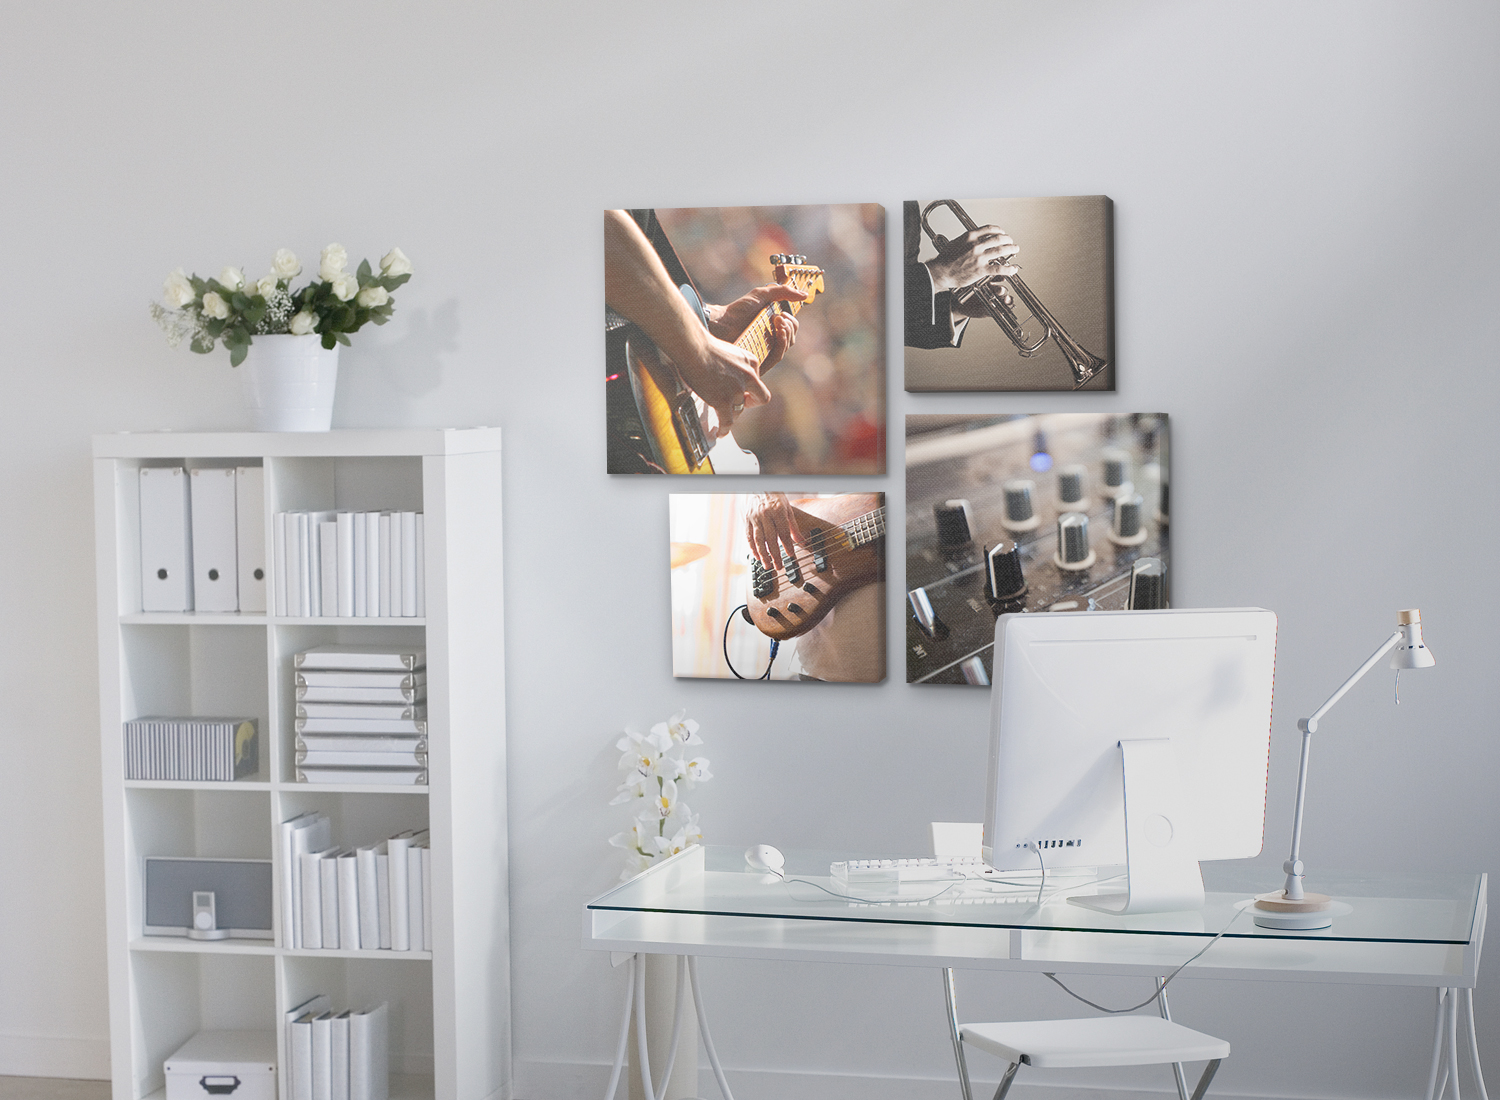 OfficeCanvas NoLogo Decorate Your Walls Like a Pro: Canvas Print Ideas for Any Space